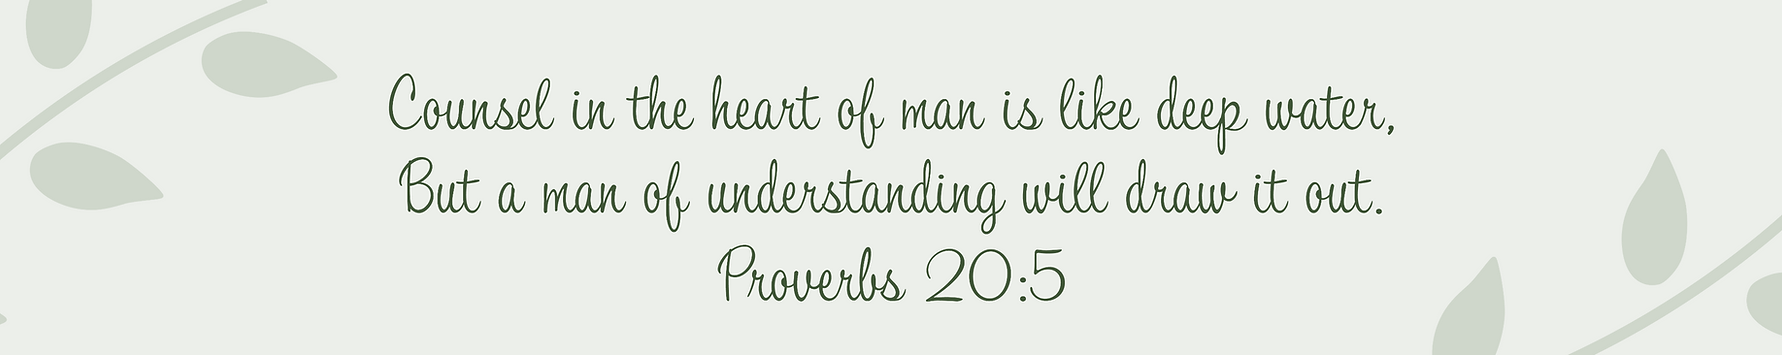 proverbs-image@2x.png